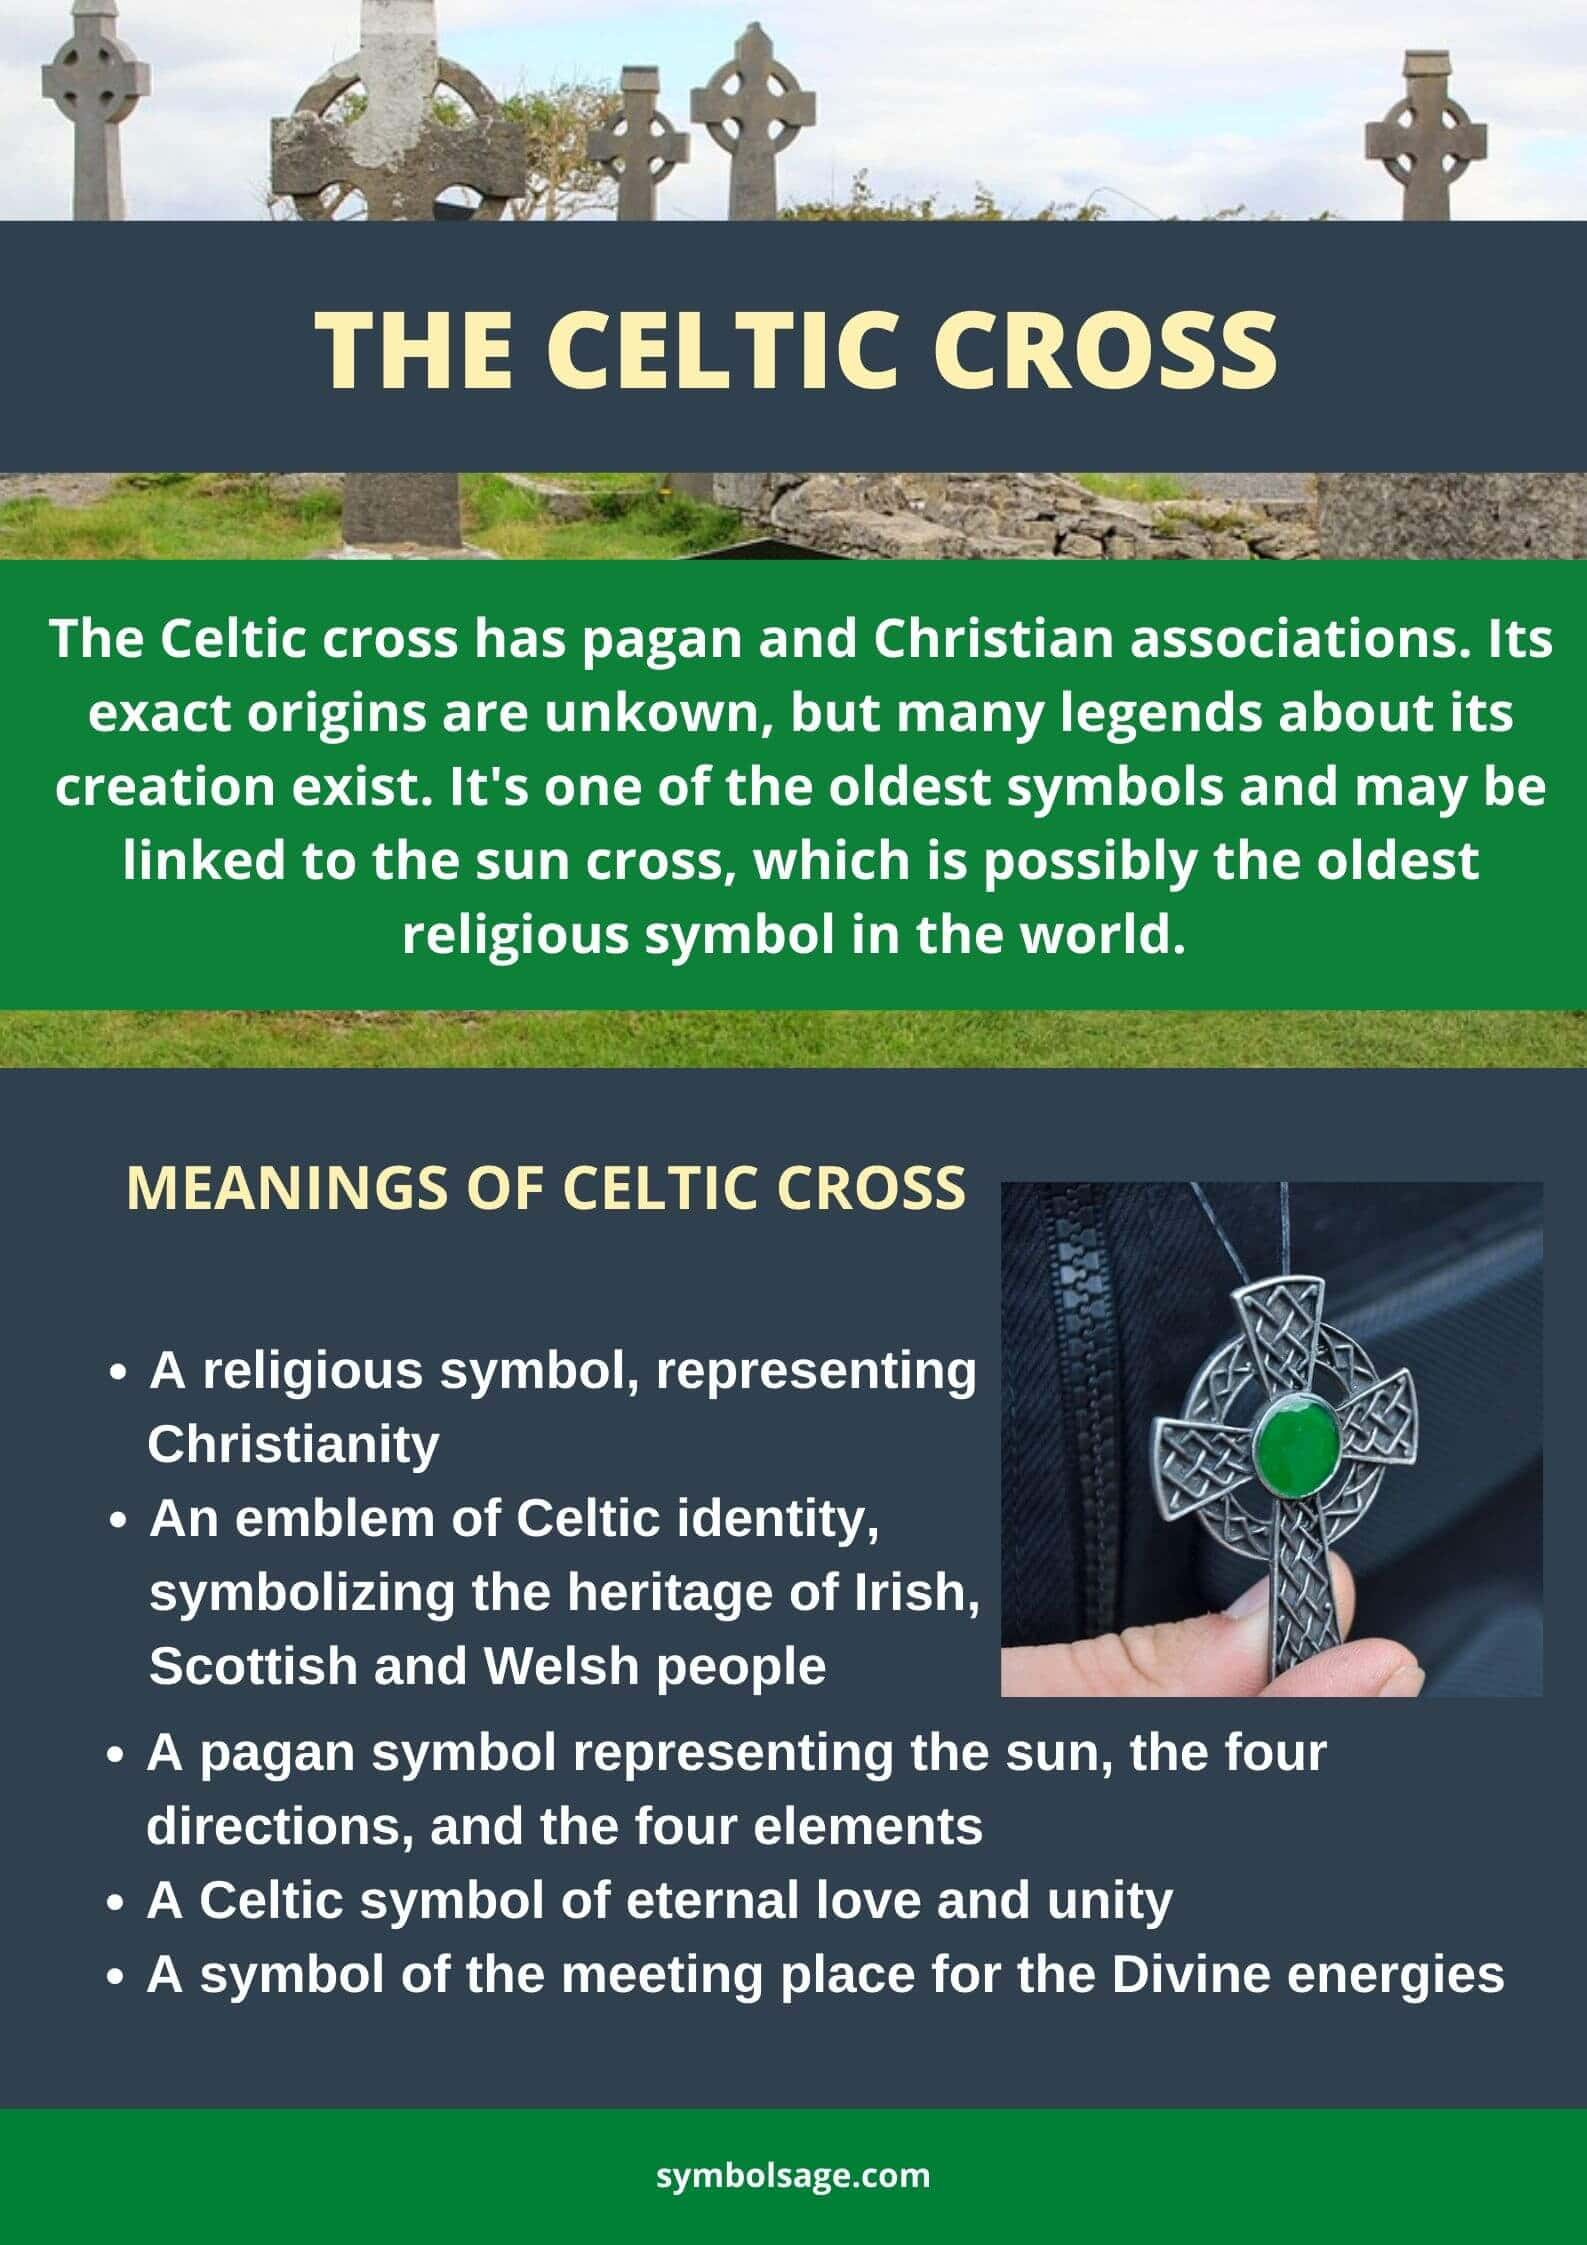 Celtic cross meaning and history infographic